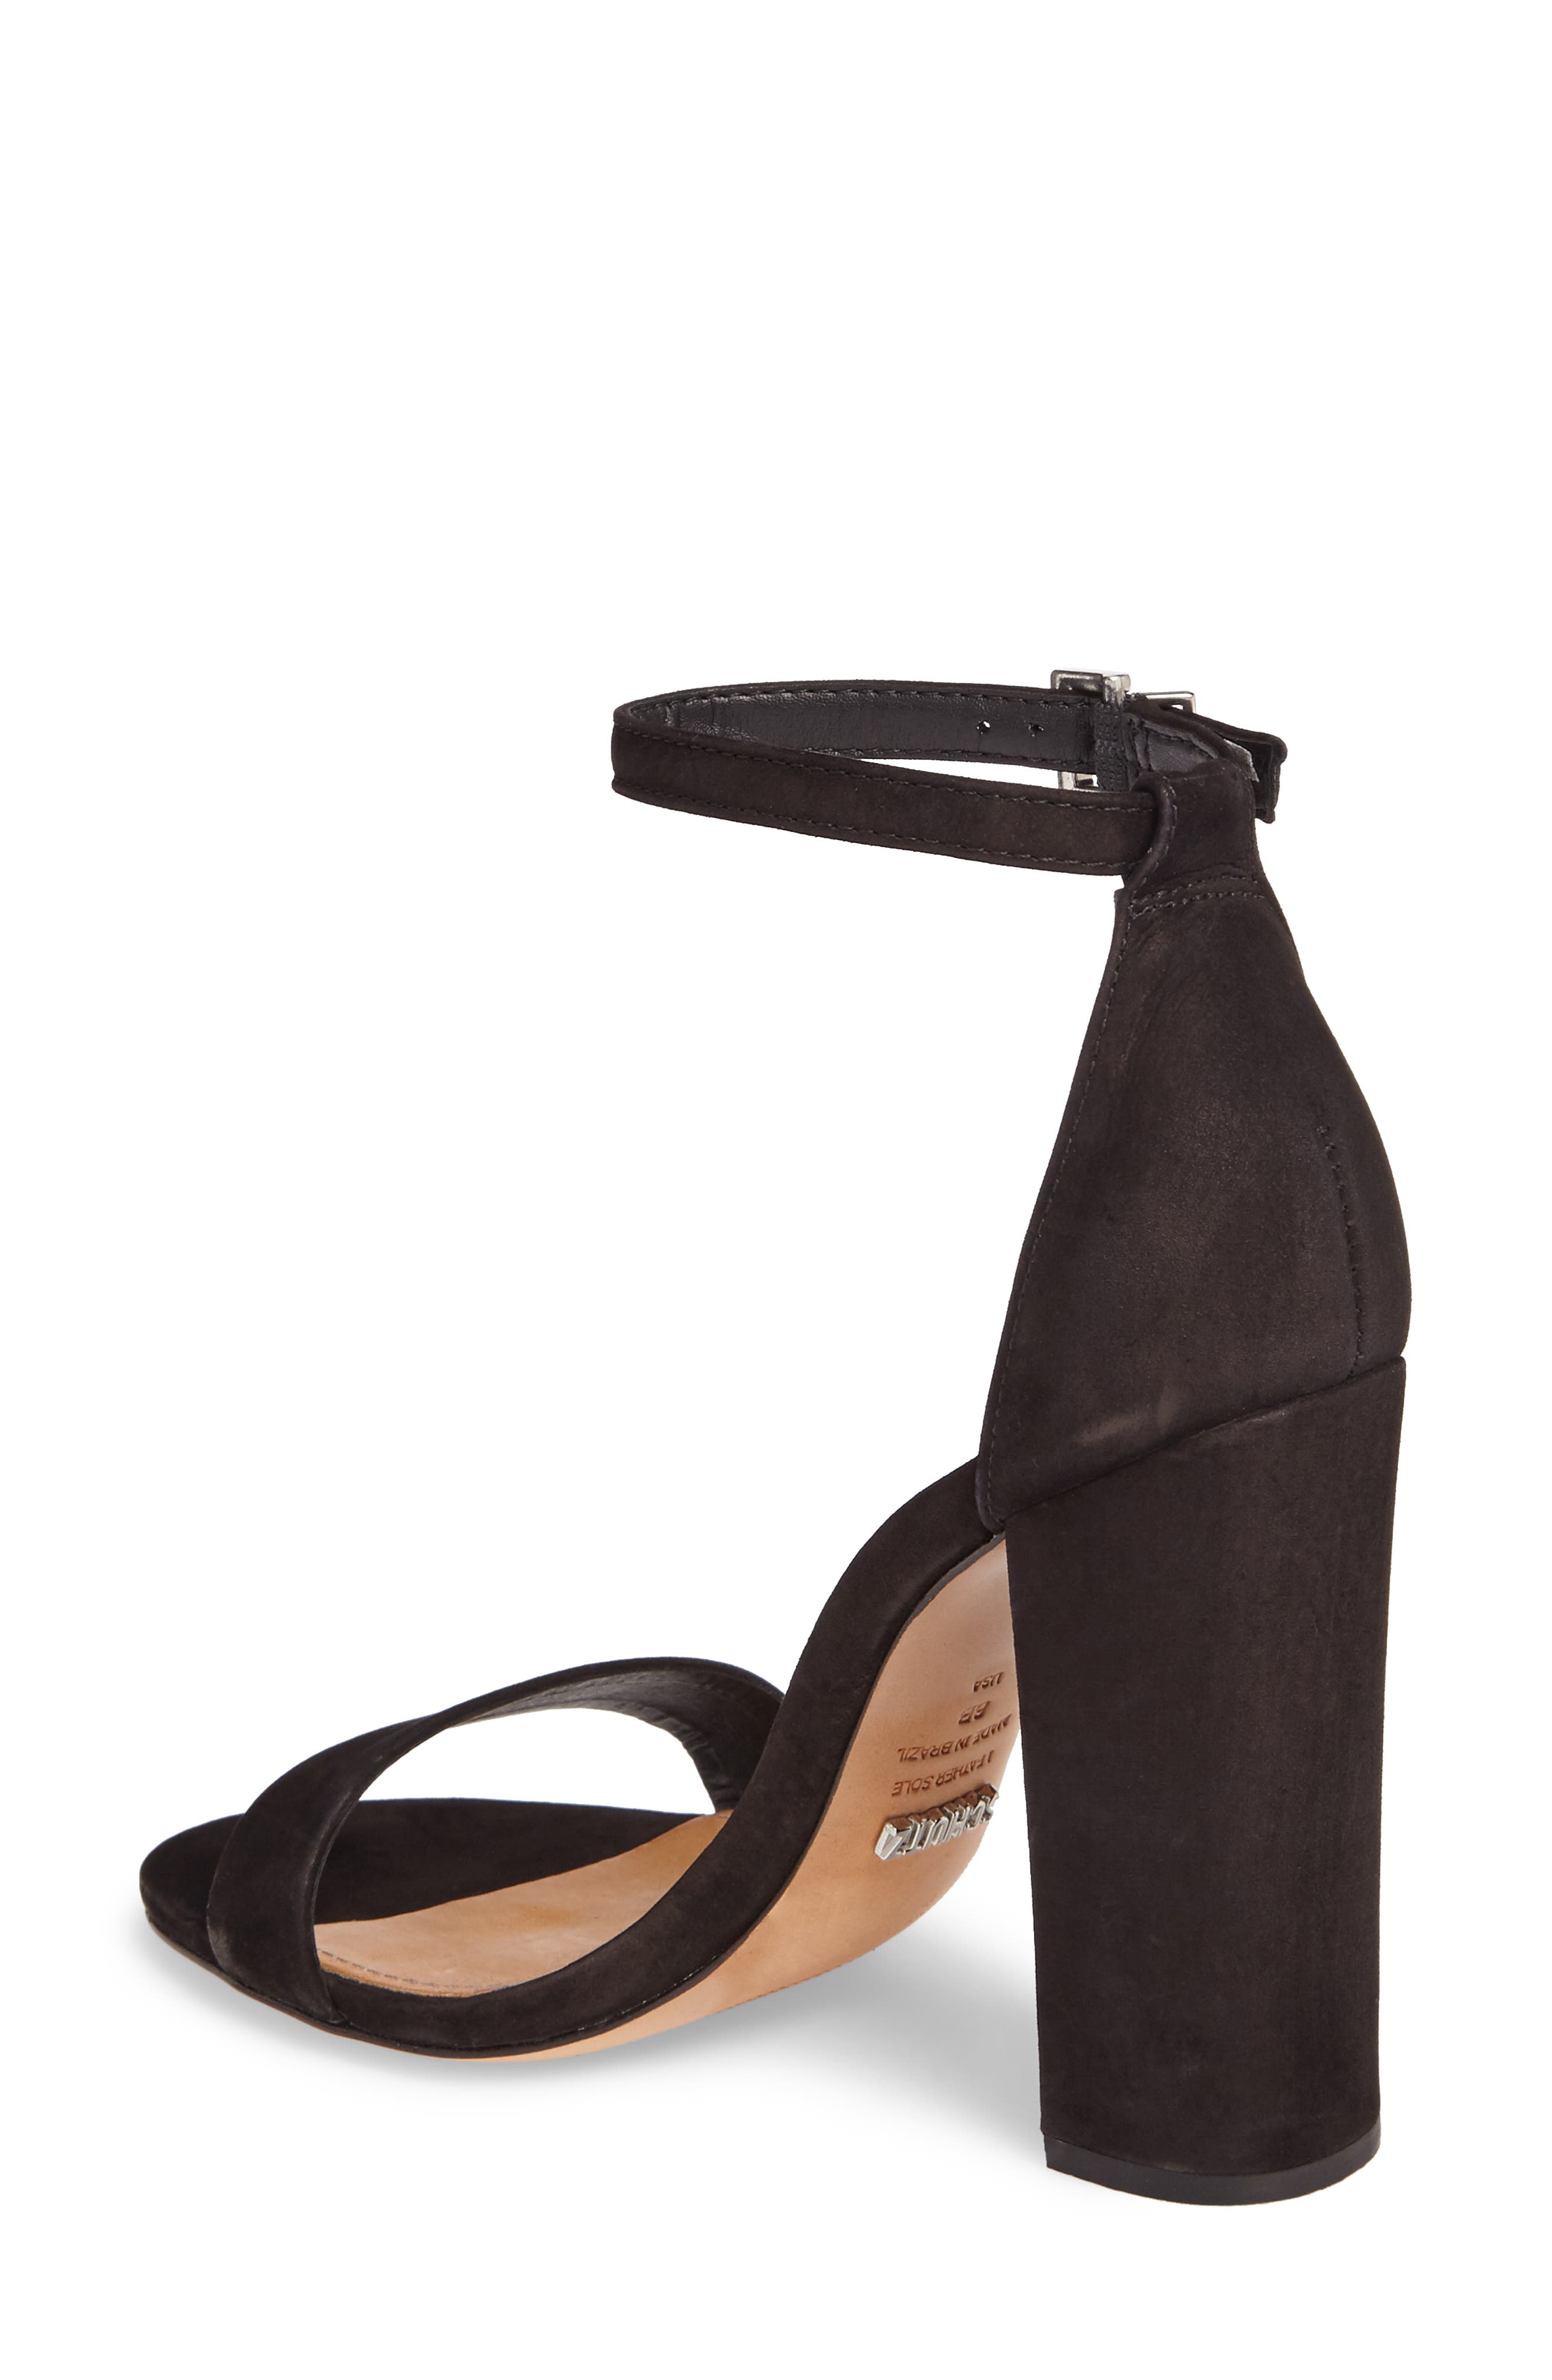 Enida Strappy Sandal,                             Alternate thumbnail 2, color,                             Black Nubuck Leather